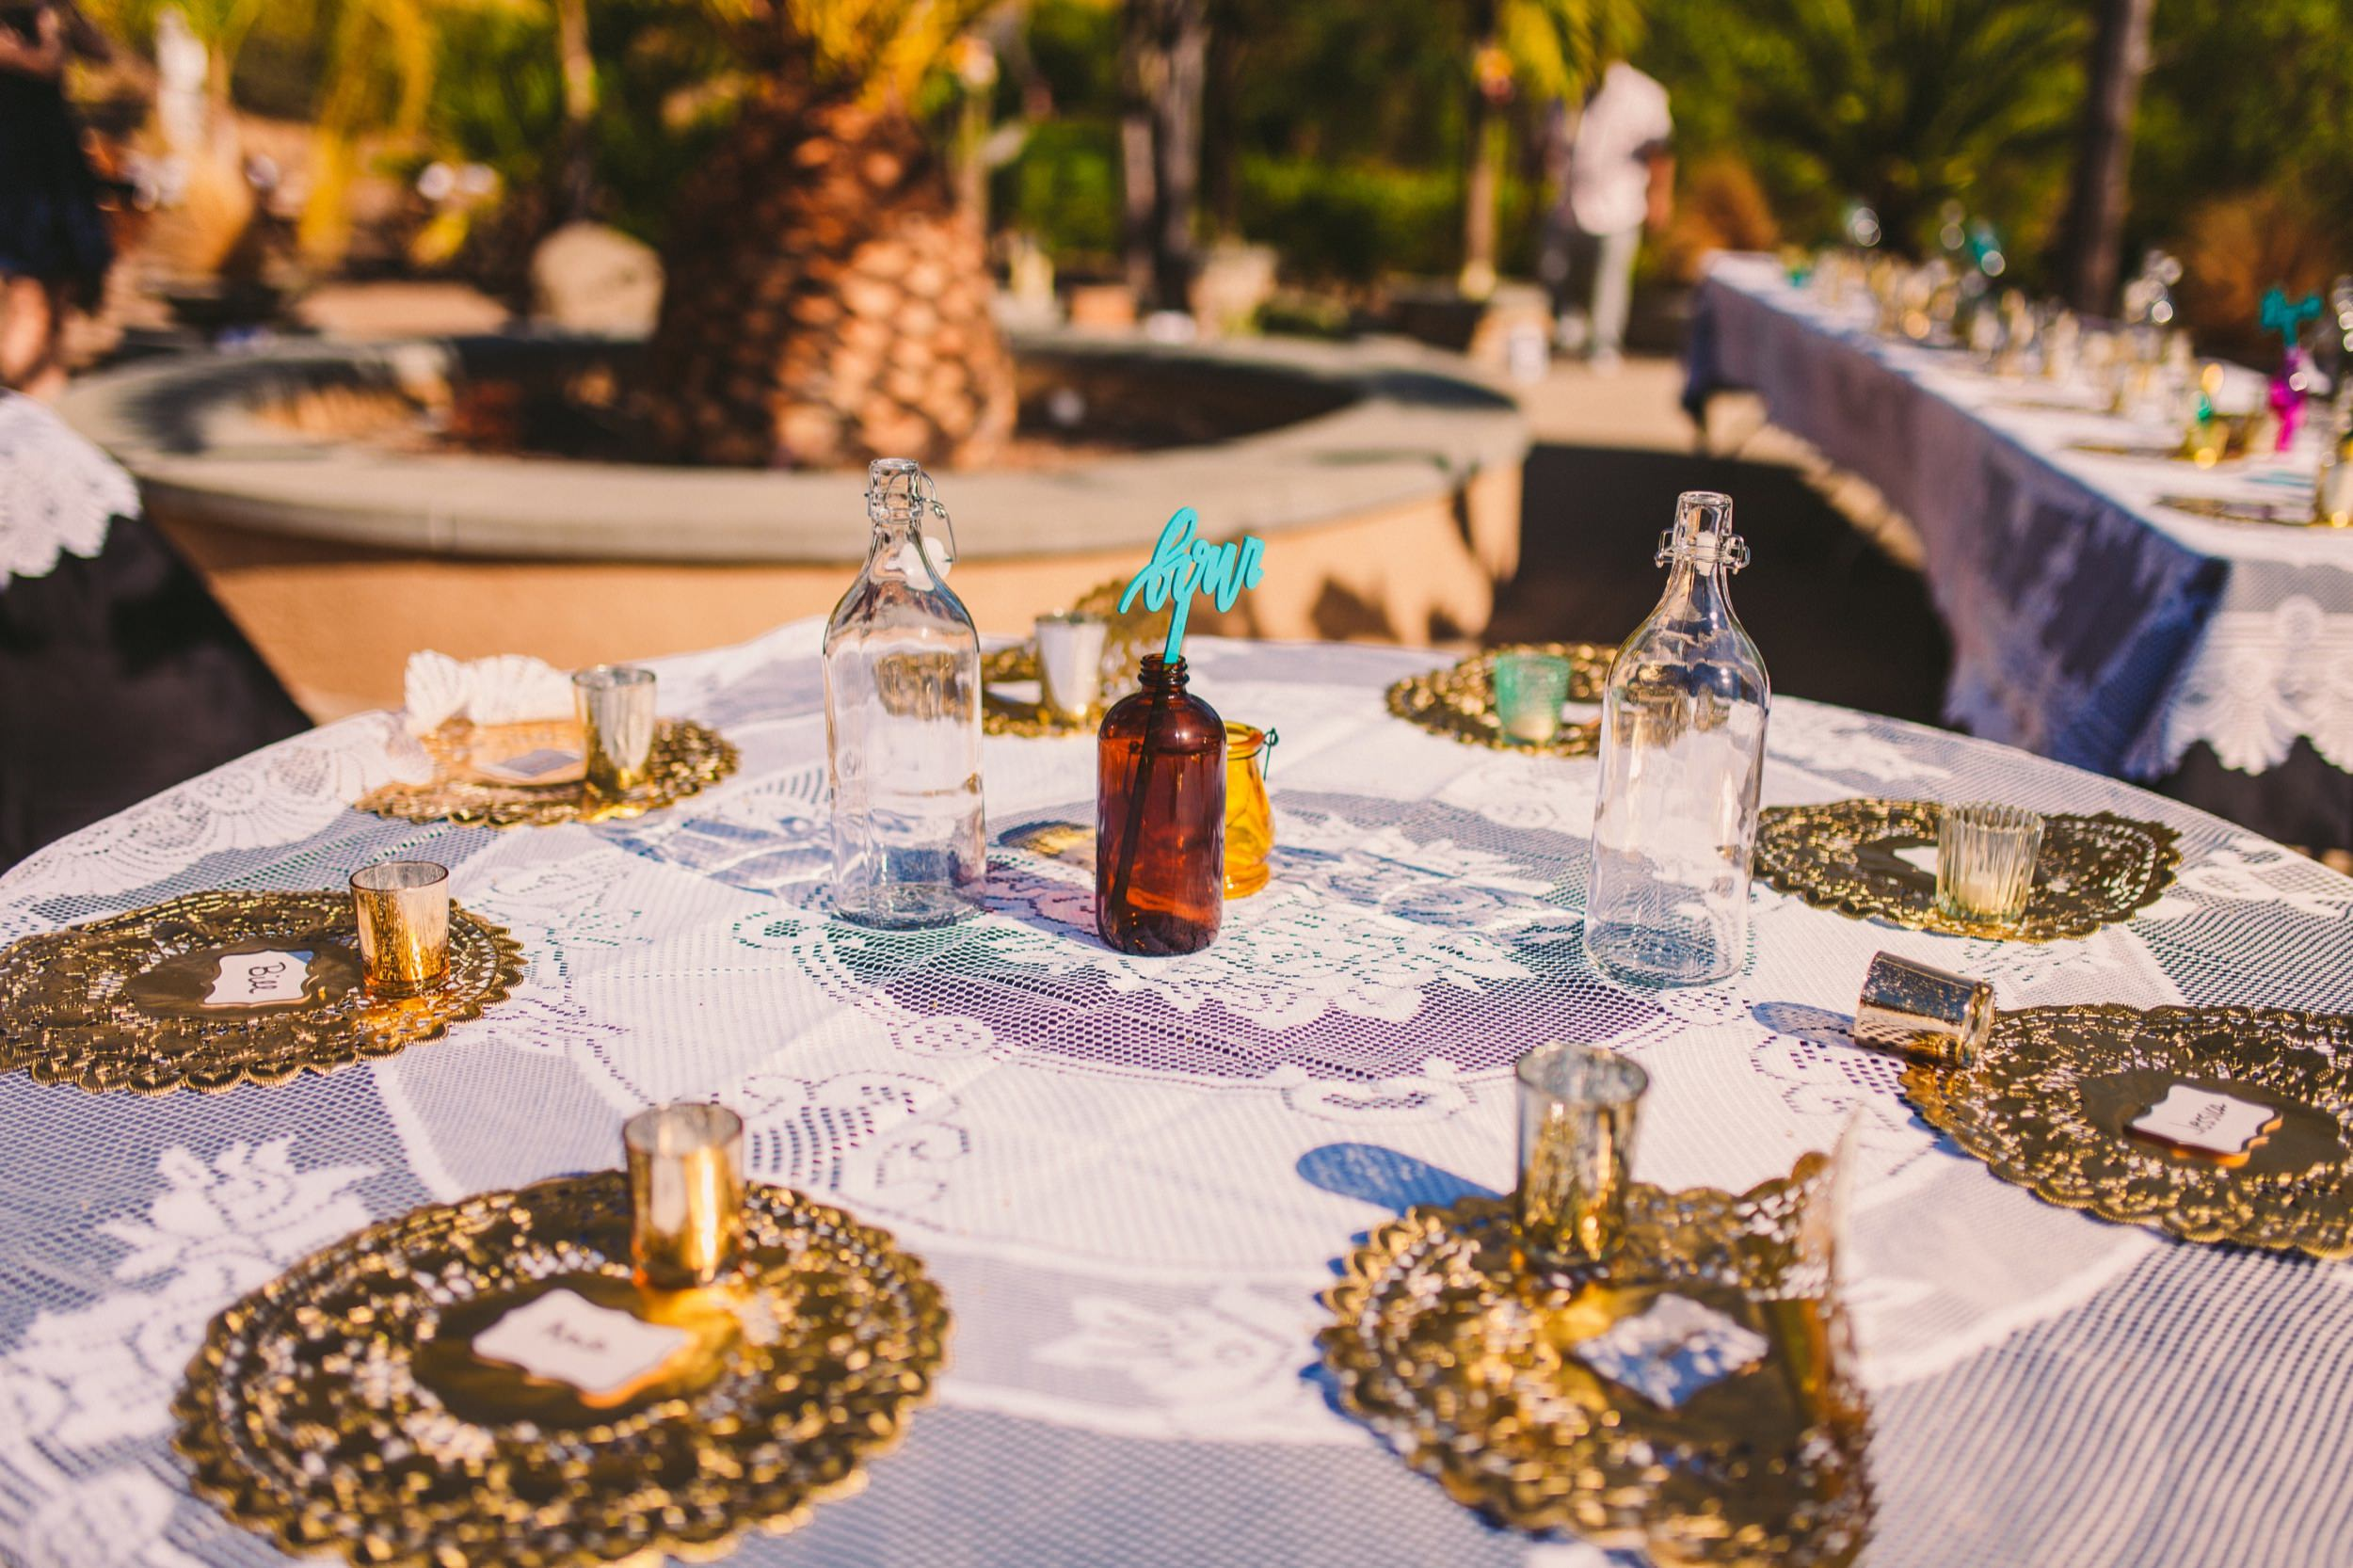 Intimate, Relaxed & Colorful Wedding Photography in Temecula-14.jpg